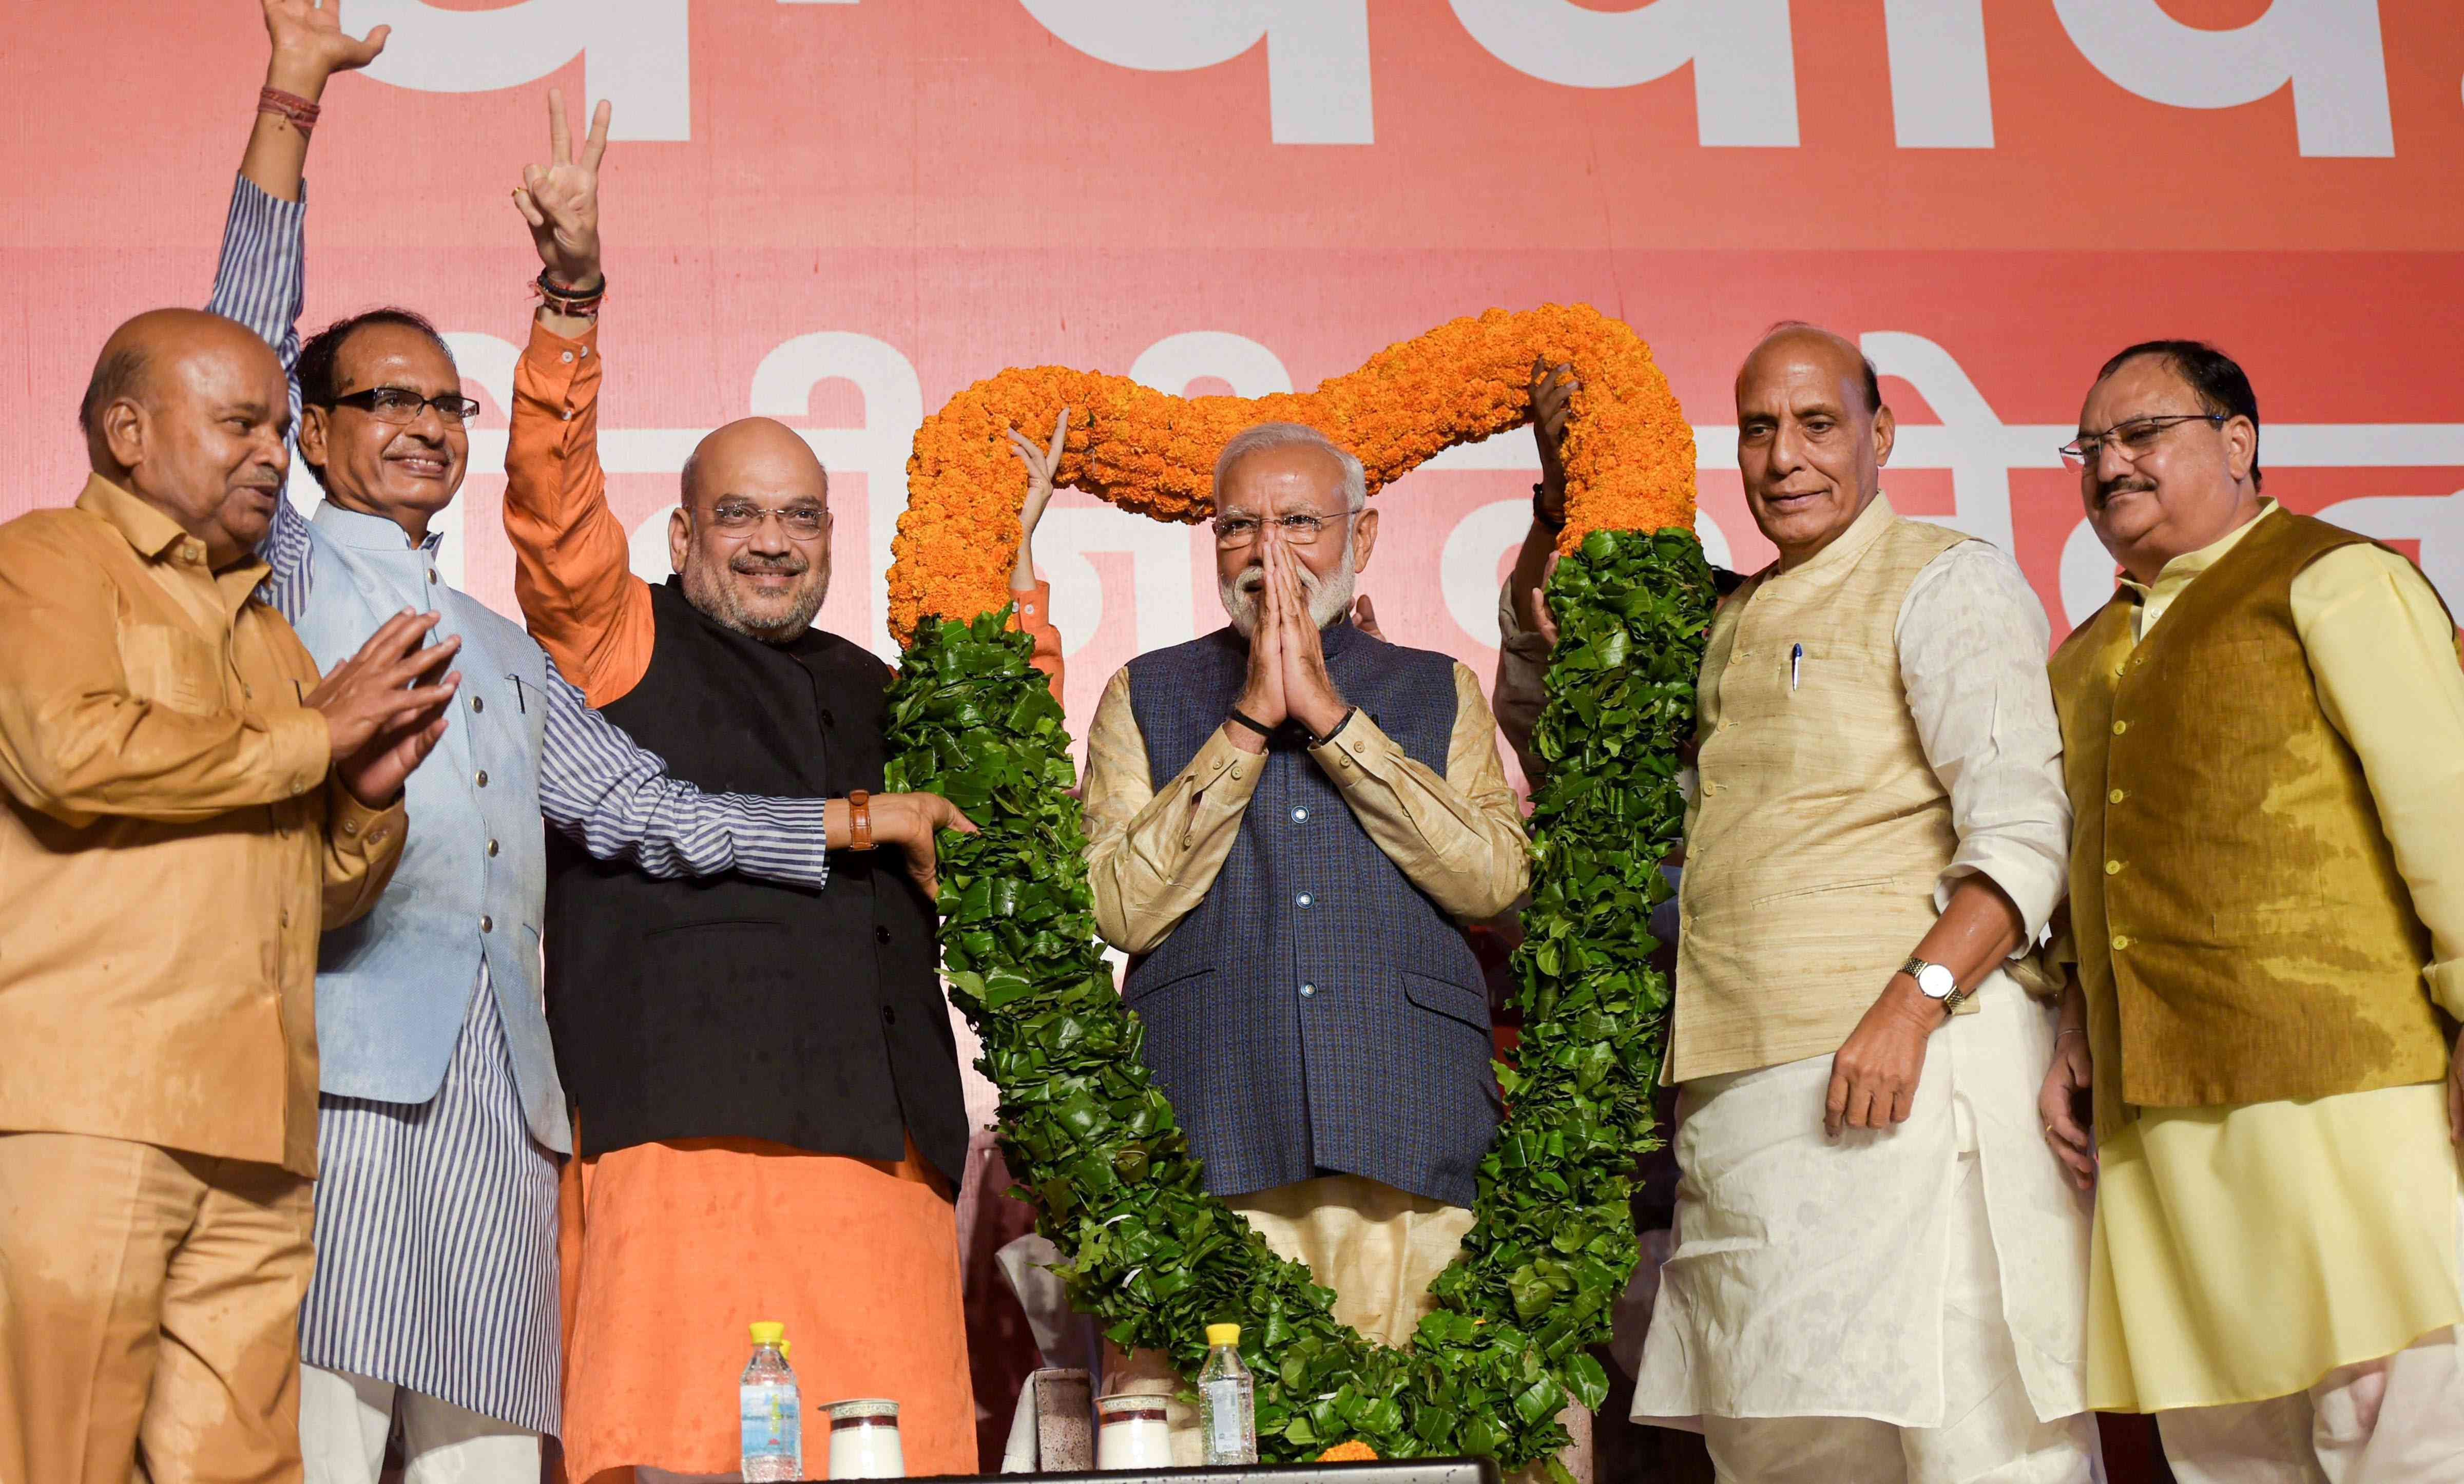 Prime Minister Narendra Modi (centre) and other senior BJP leaders celebrate the election victory at the party headquarters in New Delhi on Thursday. (Image credit: PTI)